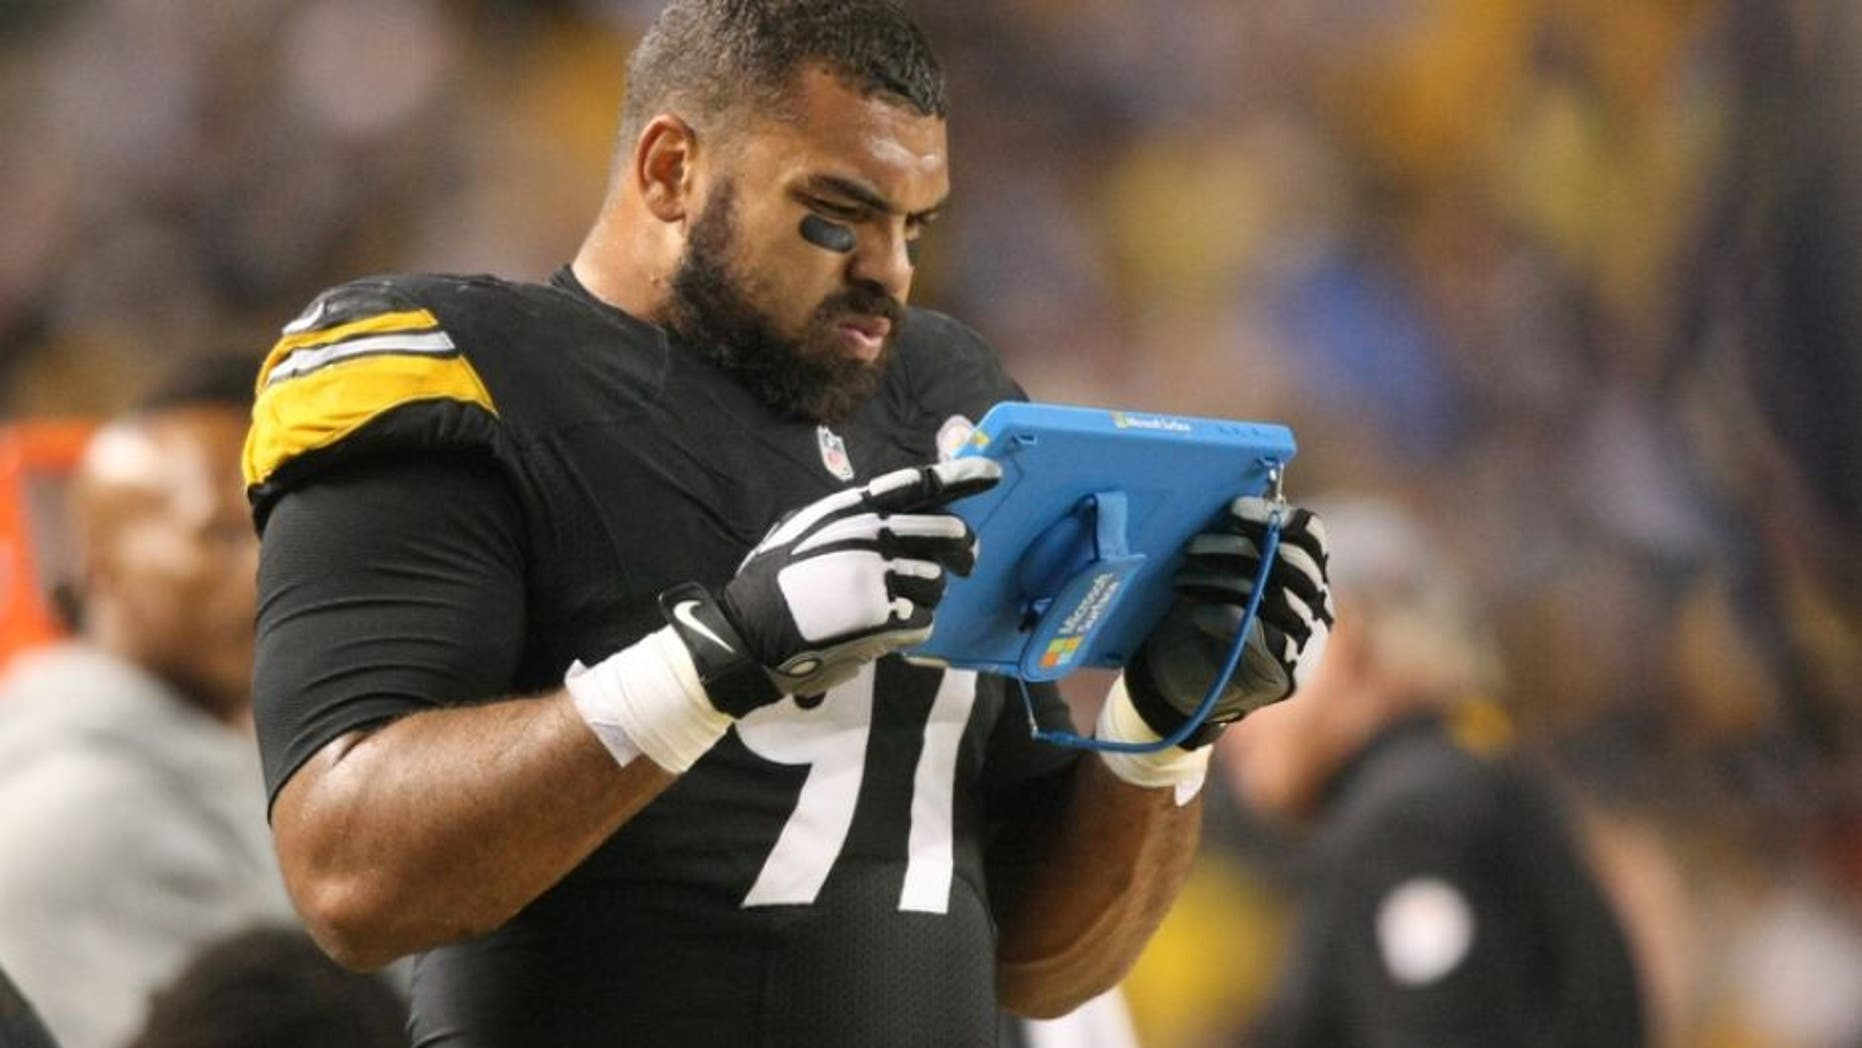 Oct 2, 2016; Pittsburgh, PA, USA; Pittsburgh Steelers defensive end Cameron Heyward (97) reviews a play on a tablet during the first half of the game against the Kansas City Chiefs at Heinz Field. Mandatory Credit: Jason Bridge-USA TODAY Sports